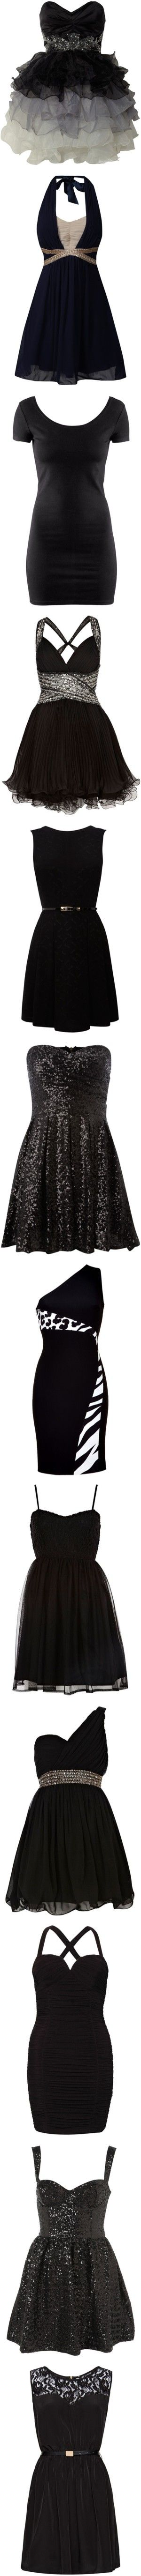 """""""little black dress"""" by andrealuvs1d ❤ liked on Polyvore"""